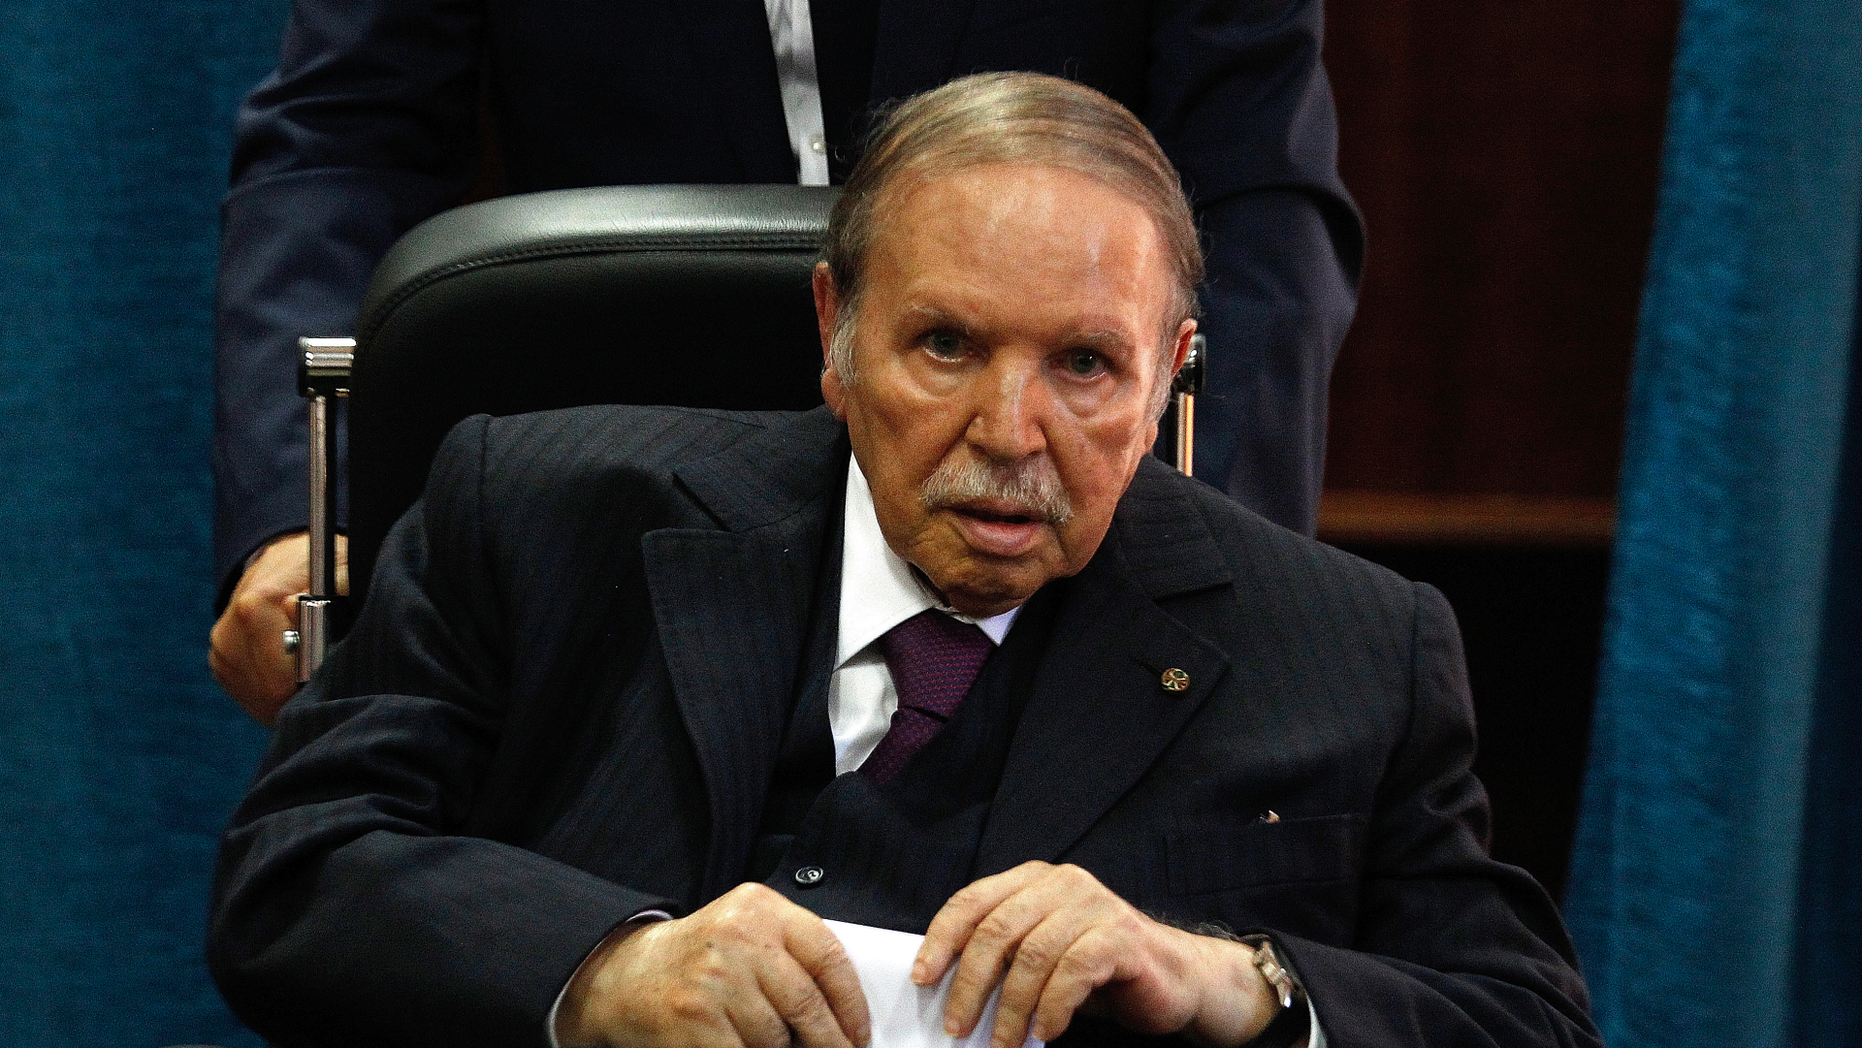 Algeria's Abdelaziz Bouteflika will not run for fifth term, says presidency